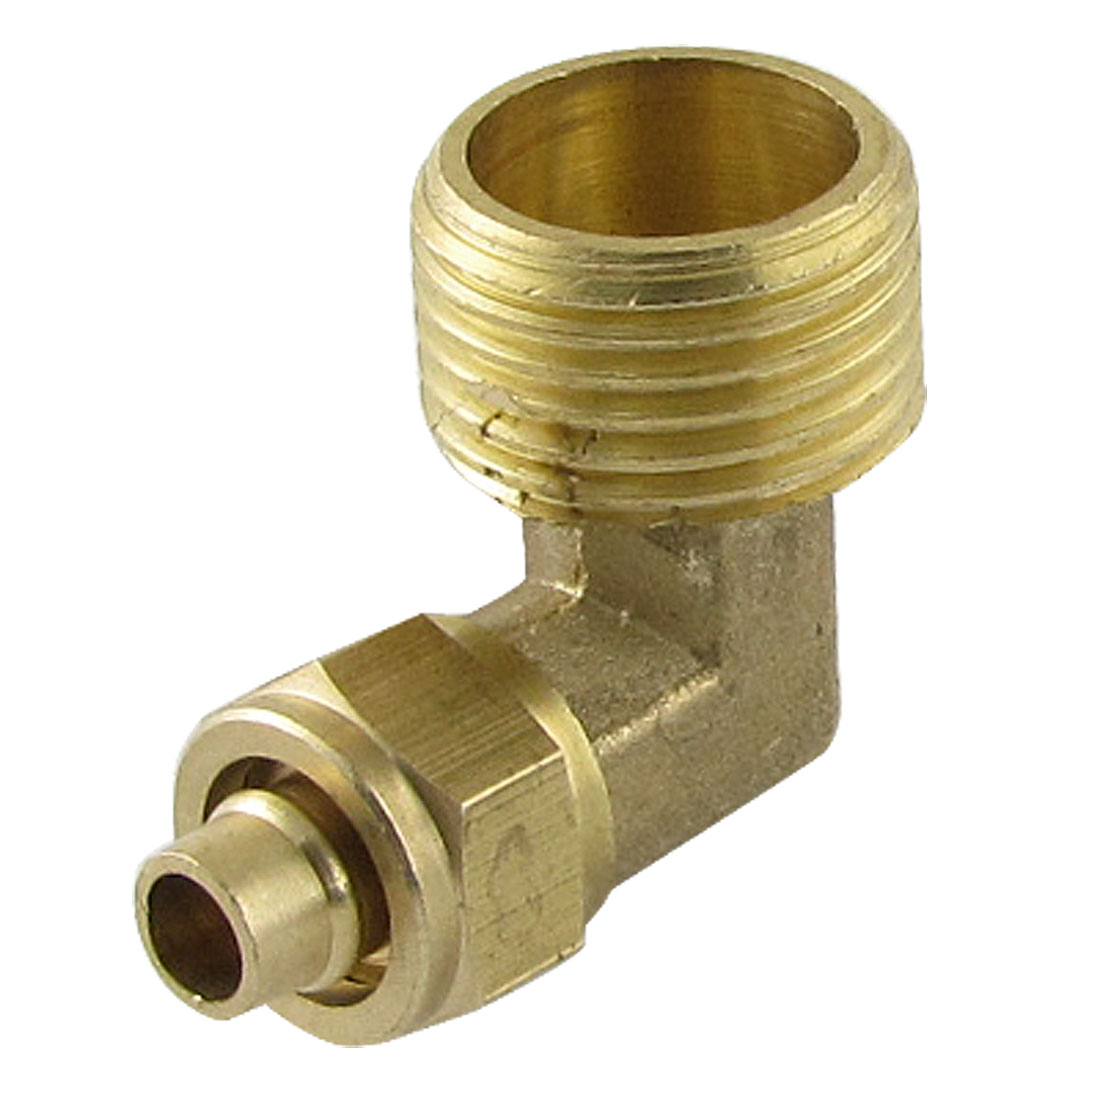 Dual Thread 7 x 10mm Brass Pipe Connector Quick Coupler